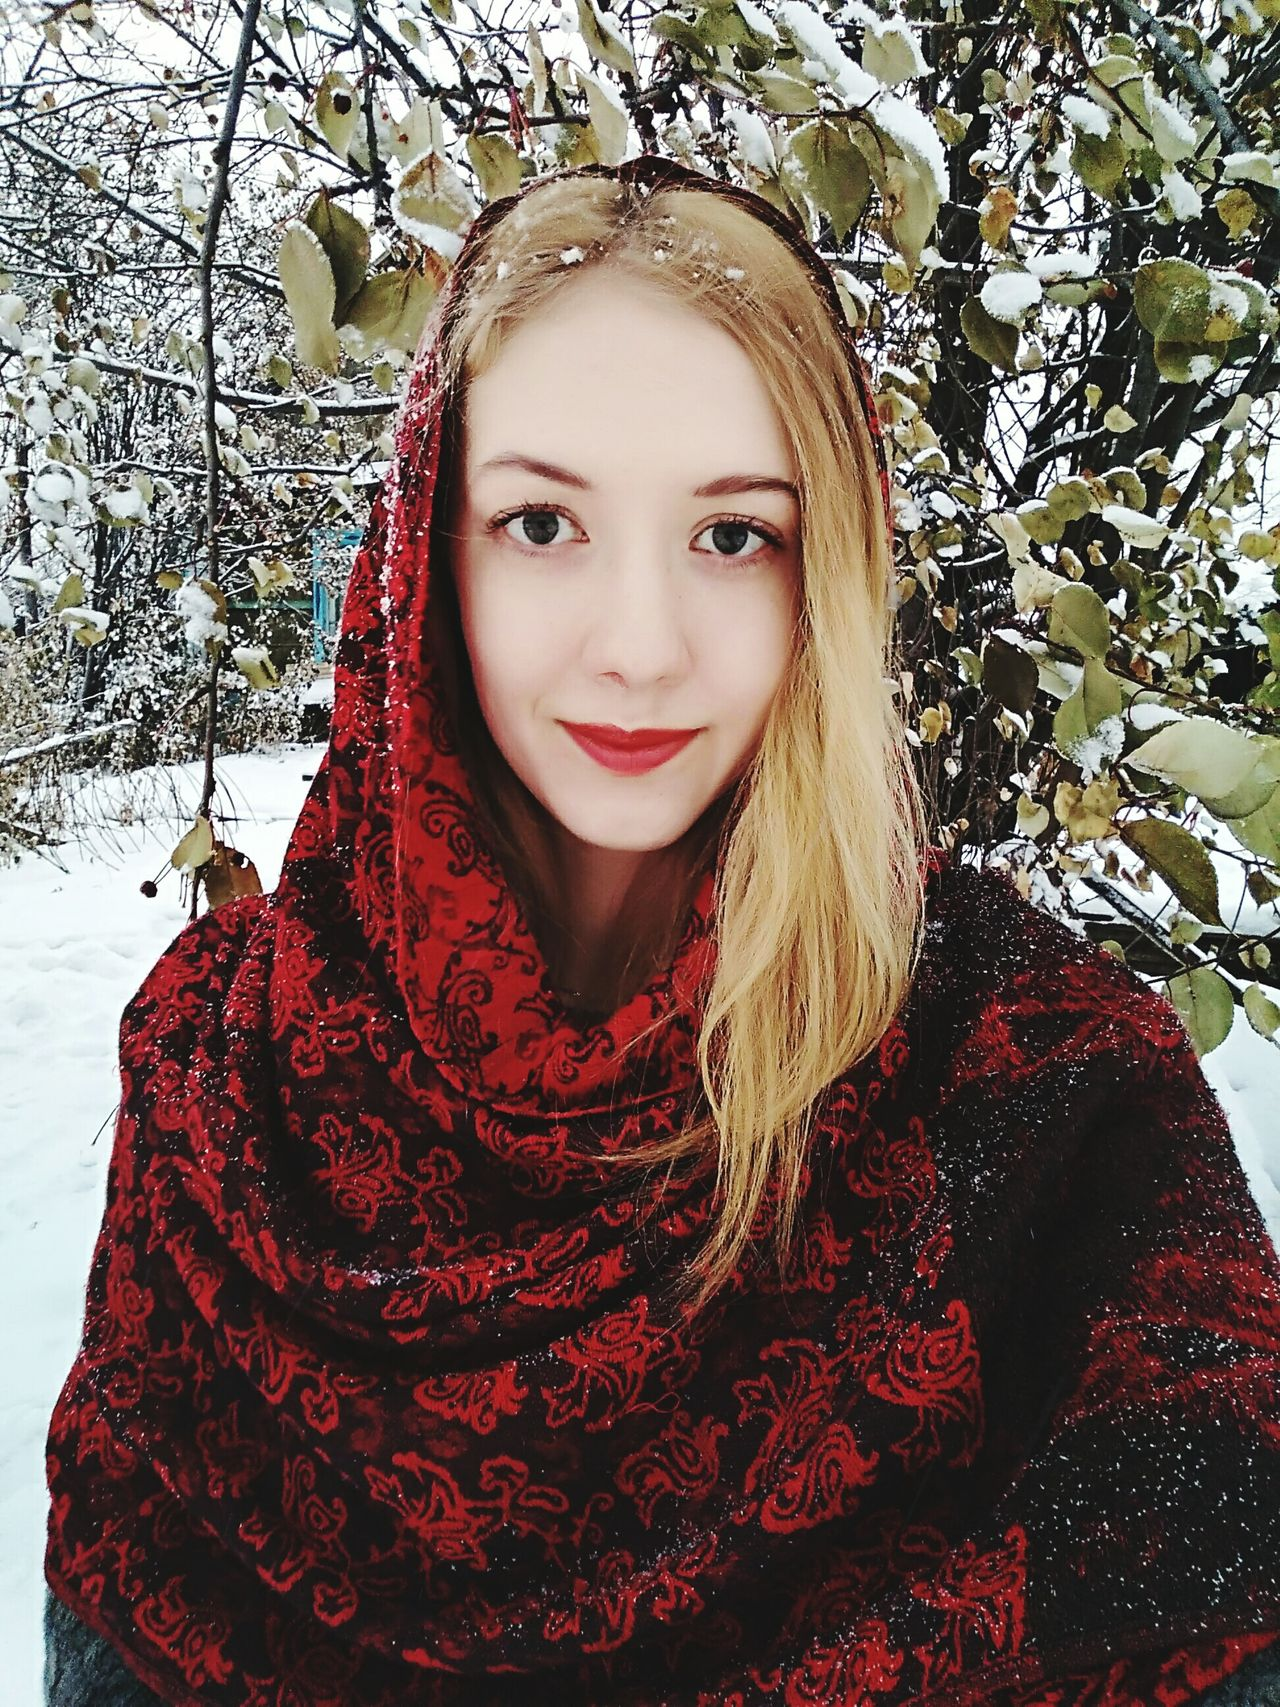 Looking At Camera Red Smiling Young Women One Person Winter Real People Portrait Beauty Selfıe Beautiful Woman One Woman Only